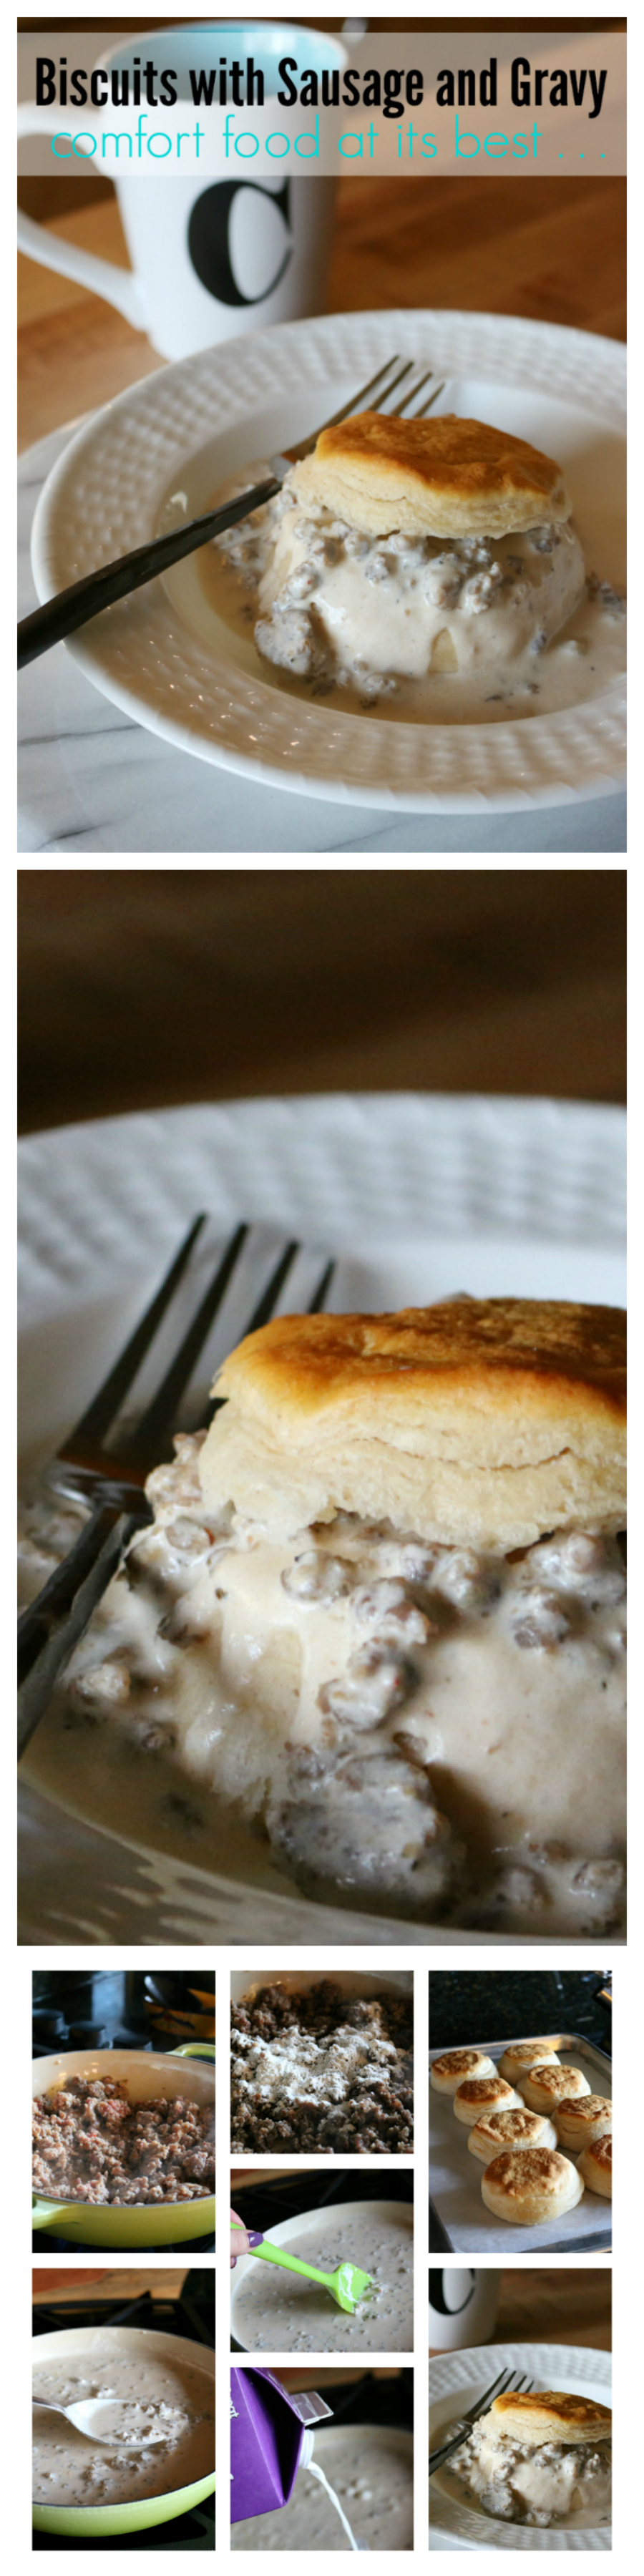 Biscuits and Sausage Gravy - Comfort Food for Breakfast  CeceliasGoodStuff.com | Good Food for Good People